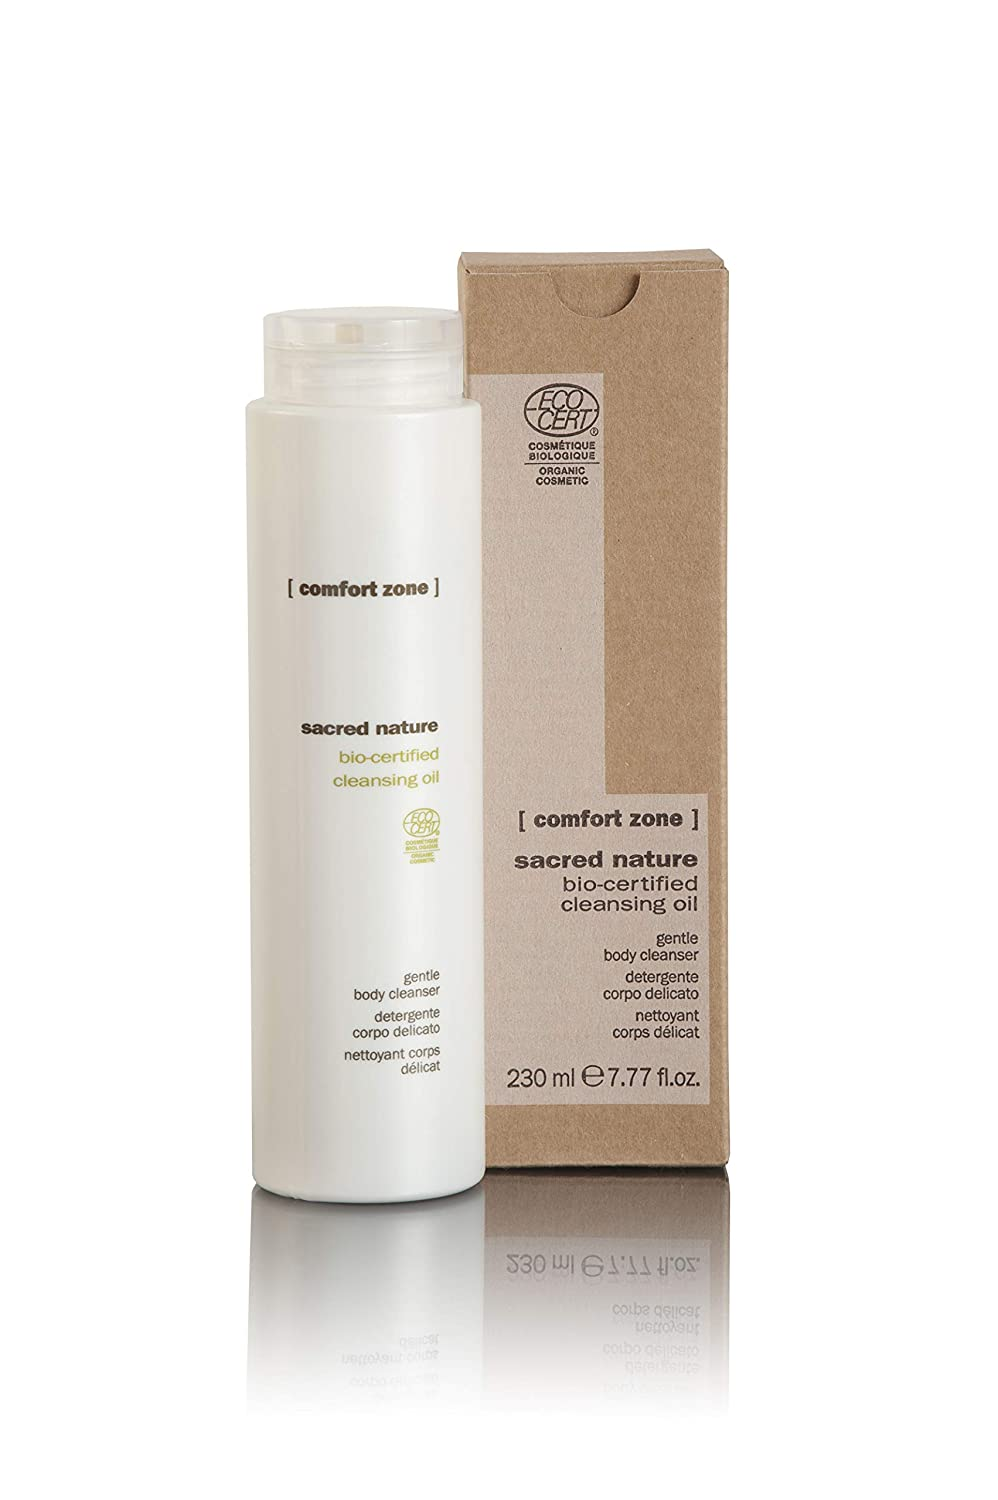 Comfort Zone Sacred Nature Cleansing Oil, 7.77 Ounce